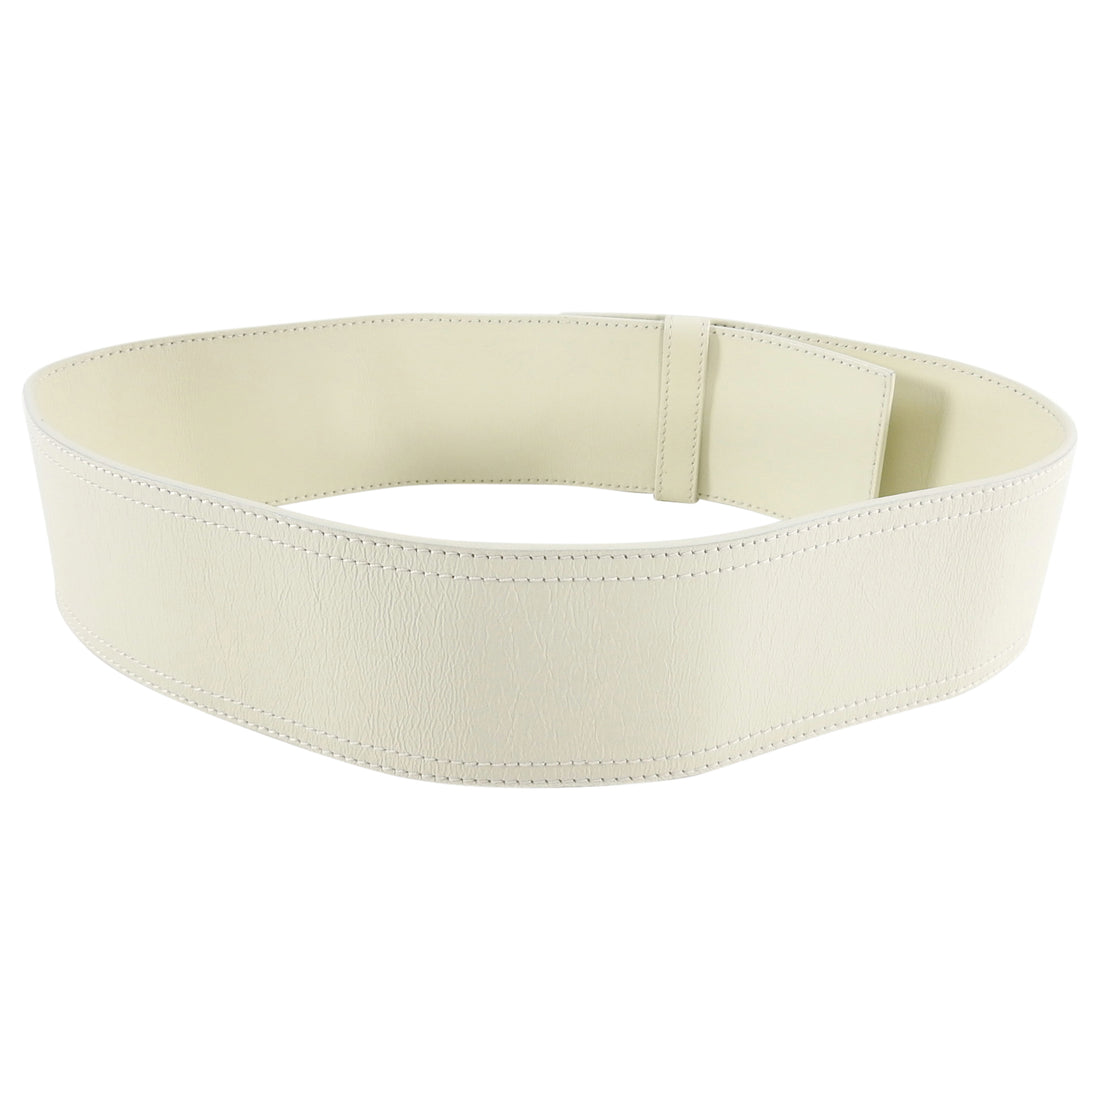 Dior Fall 2004 Ivory Wide Leather Waist Cincher Belt - 80